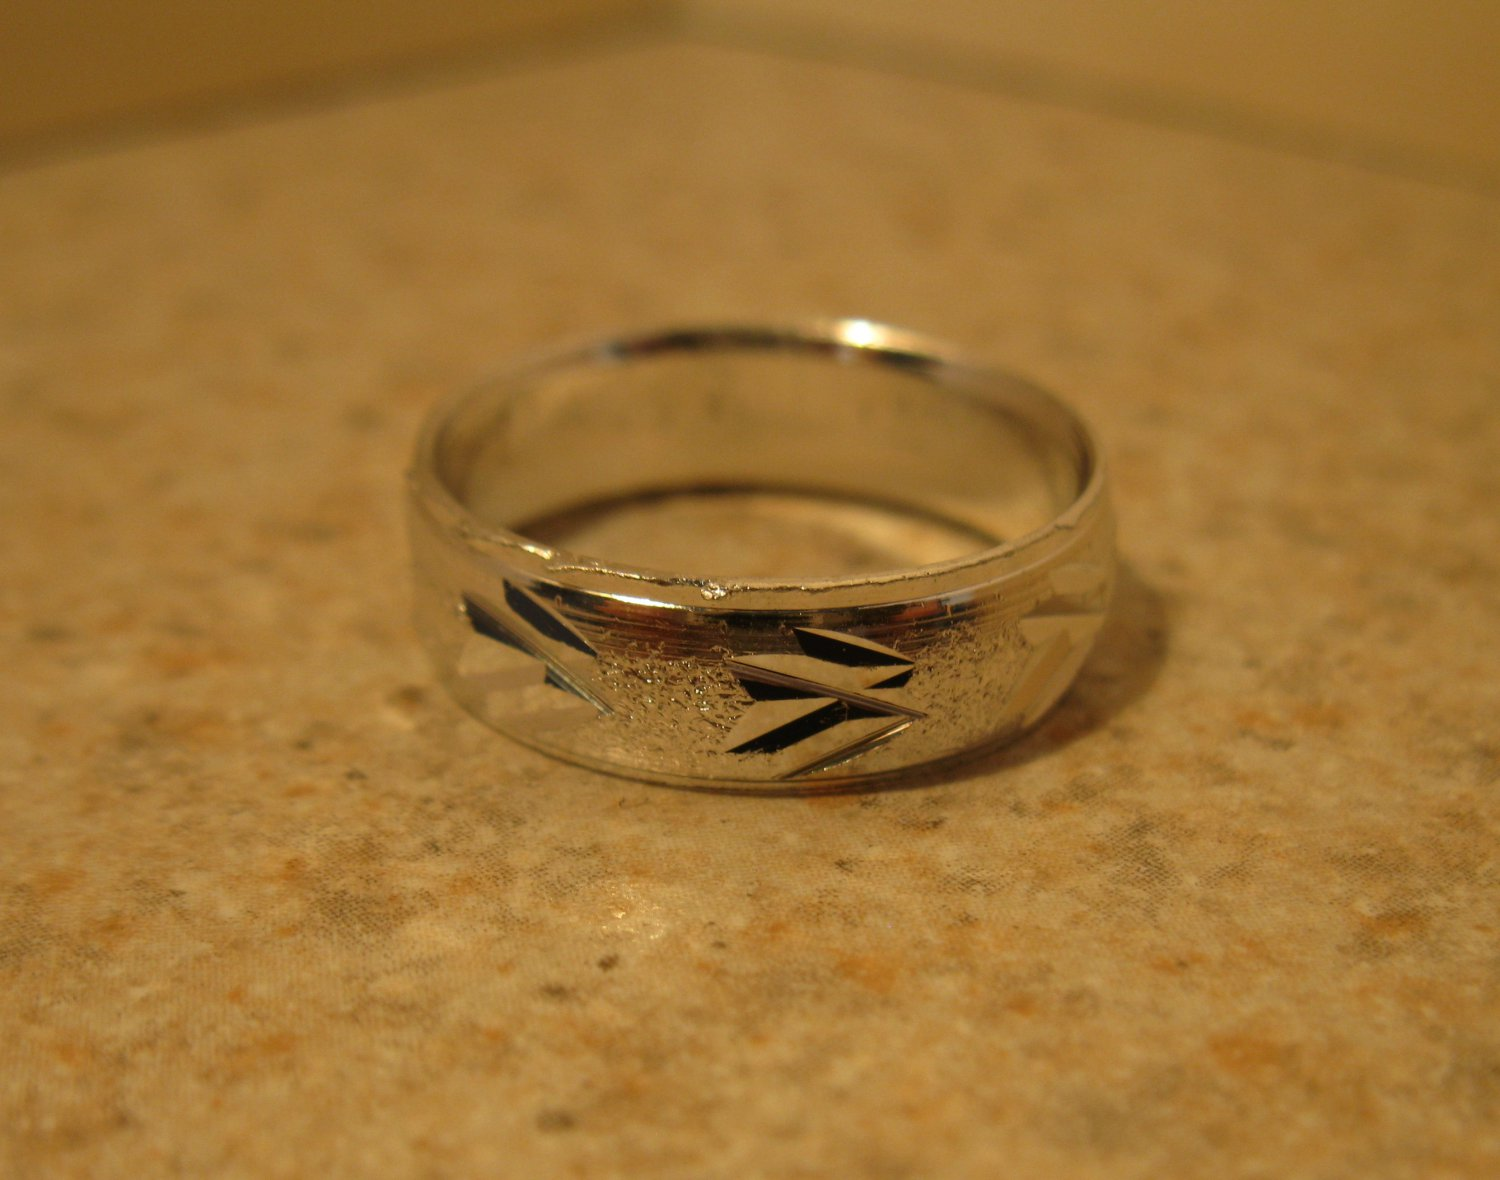 Silver Plated Double Arrow Knotch Design Aluminum Ring Unisex Size 7.5 New! #977